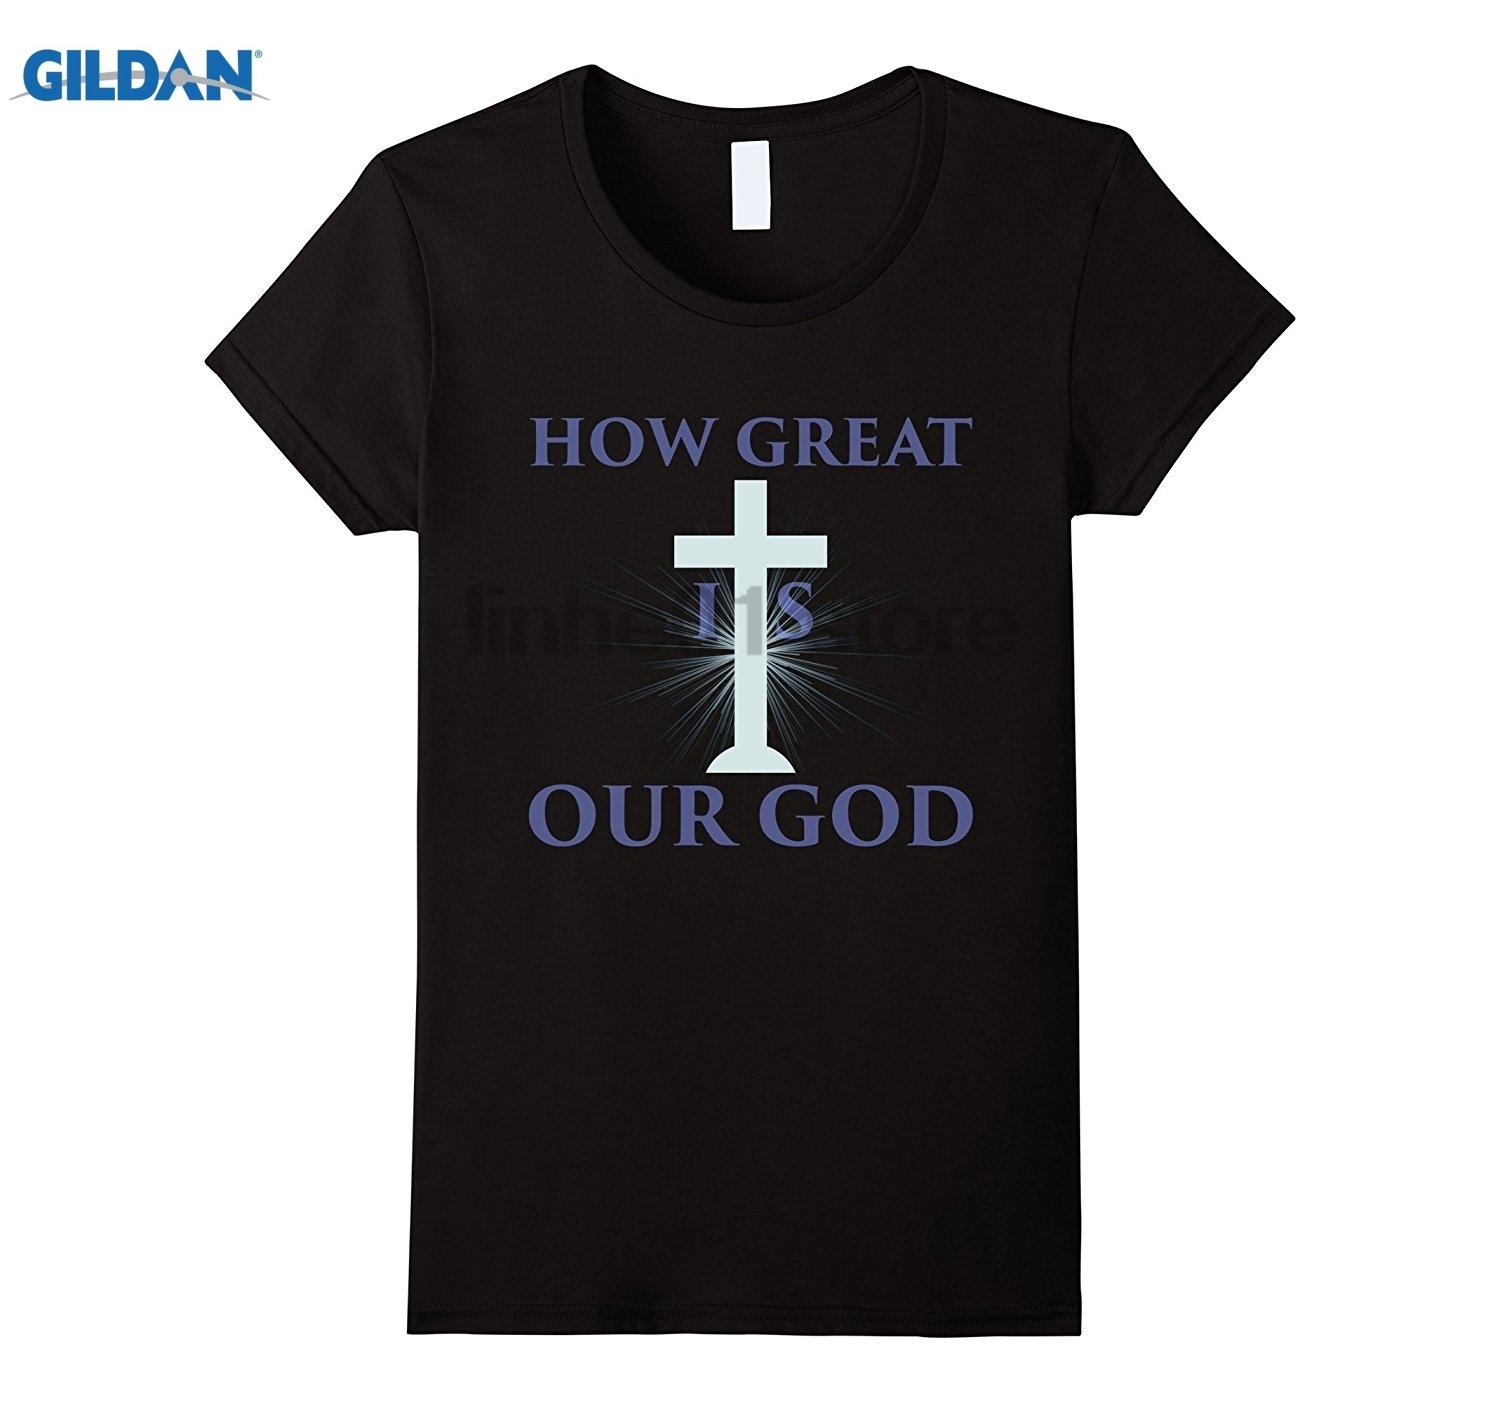 GILDAN How Great is Our God - Christian Religious T-Shirt glasses Womens T-shirt ...